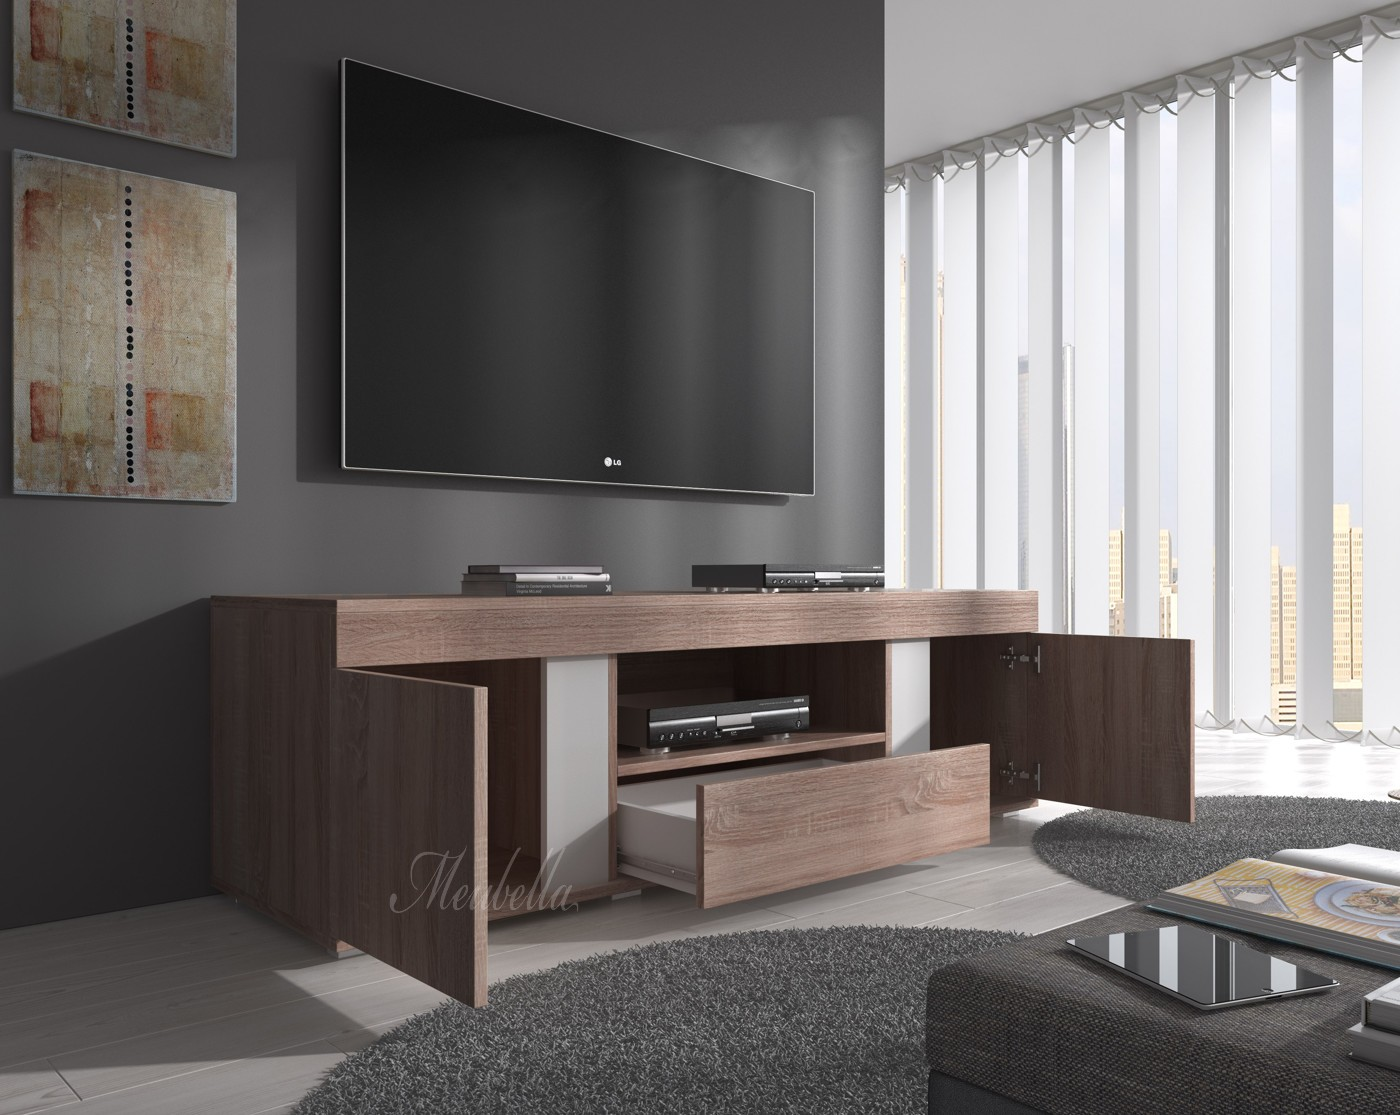 tv meubel alvarez truffel eiken 160 cm actie meubella. Black Bedroom Furniture Sets. Home Design Ideas